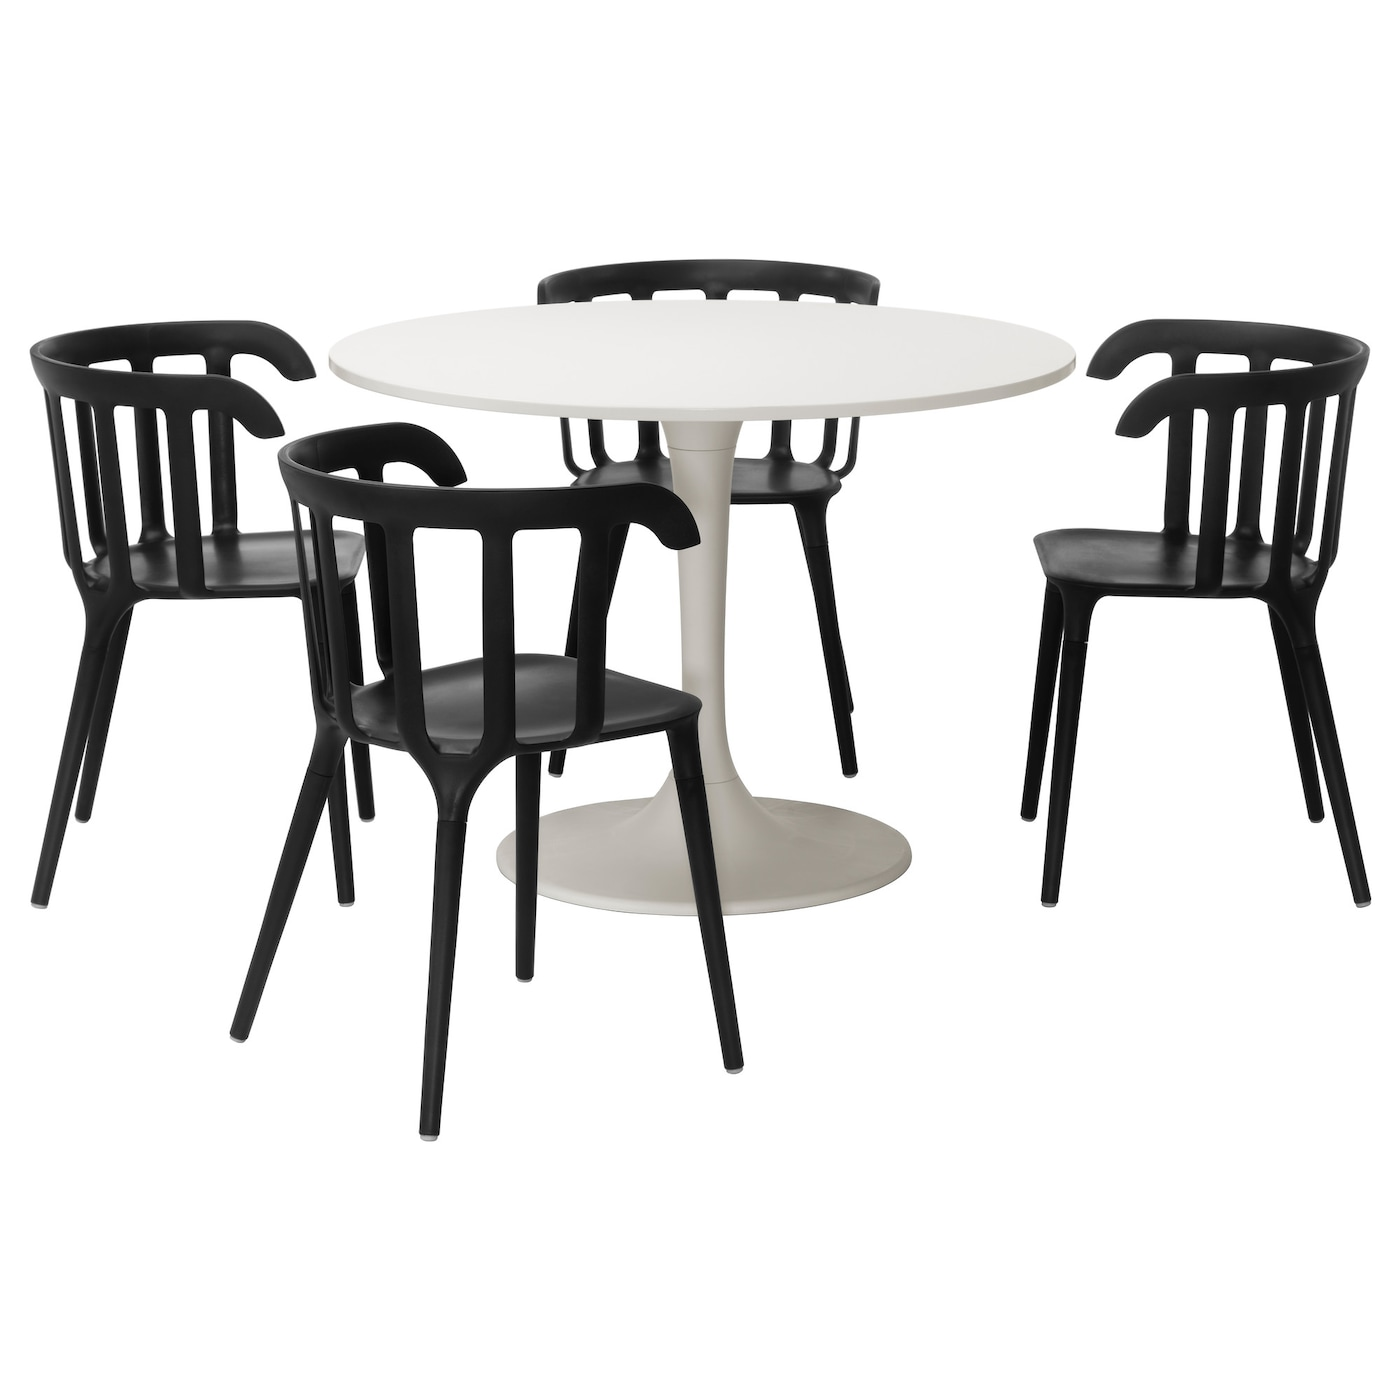 DOCKSTA/IKEA PS 2012 Table And 4 Chairs White/black 105 Cm